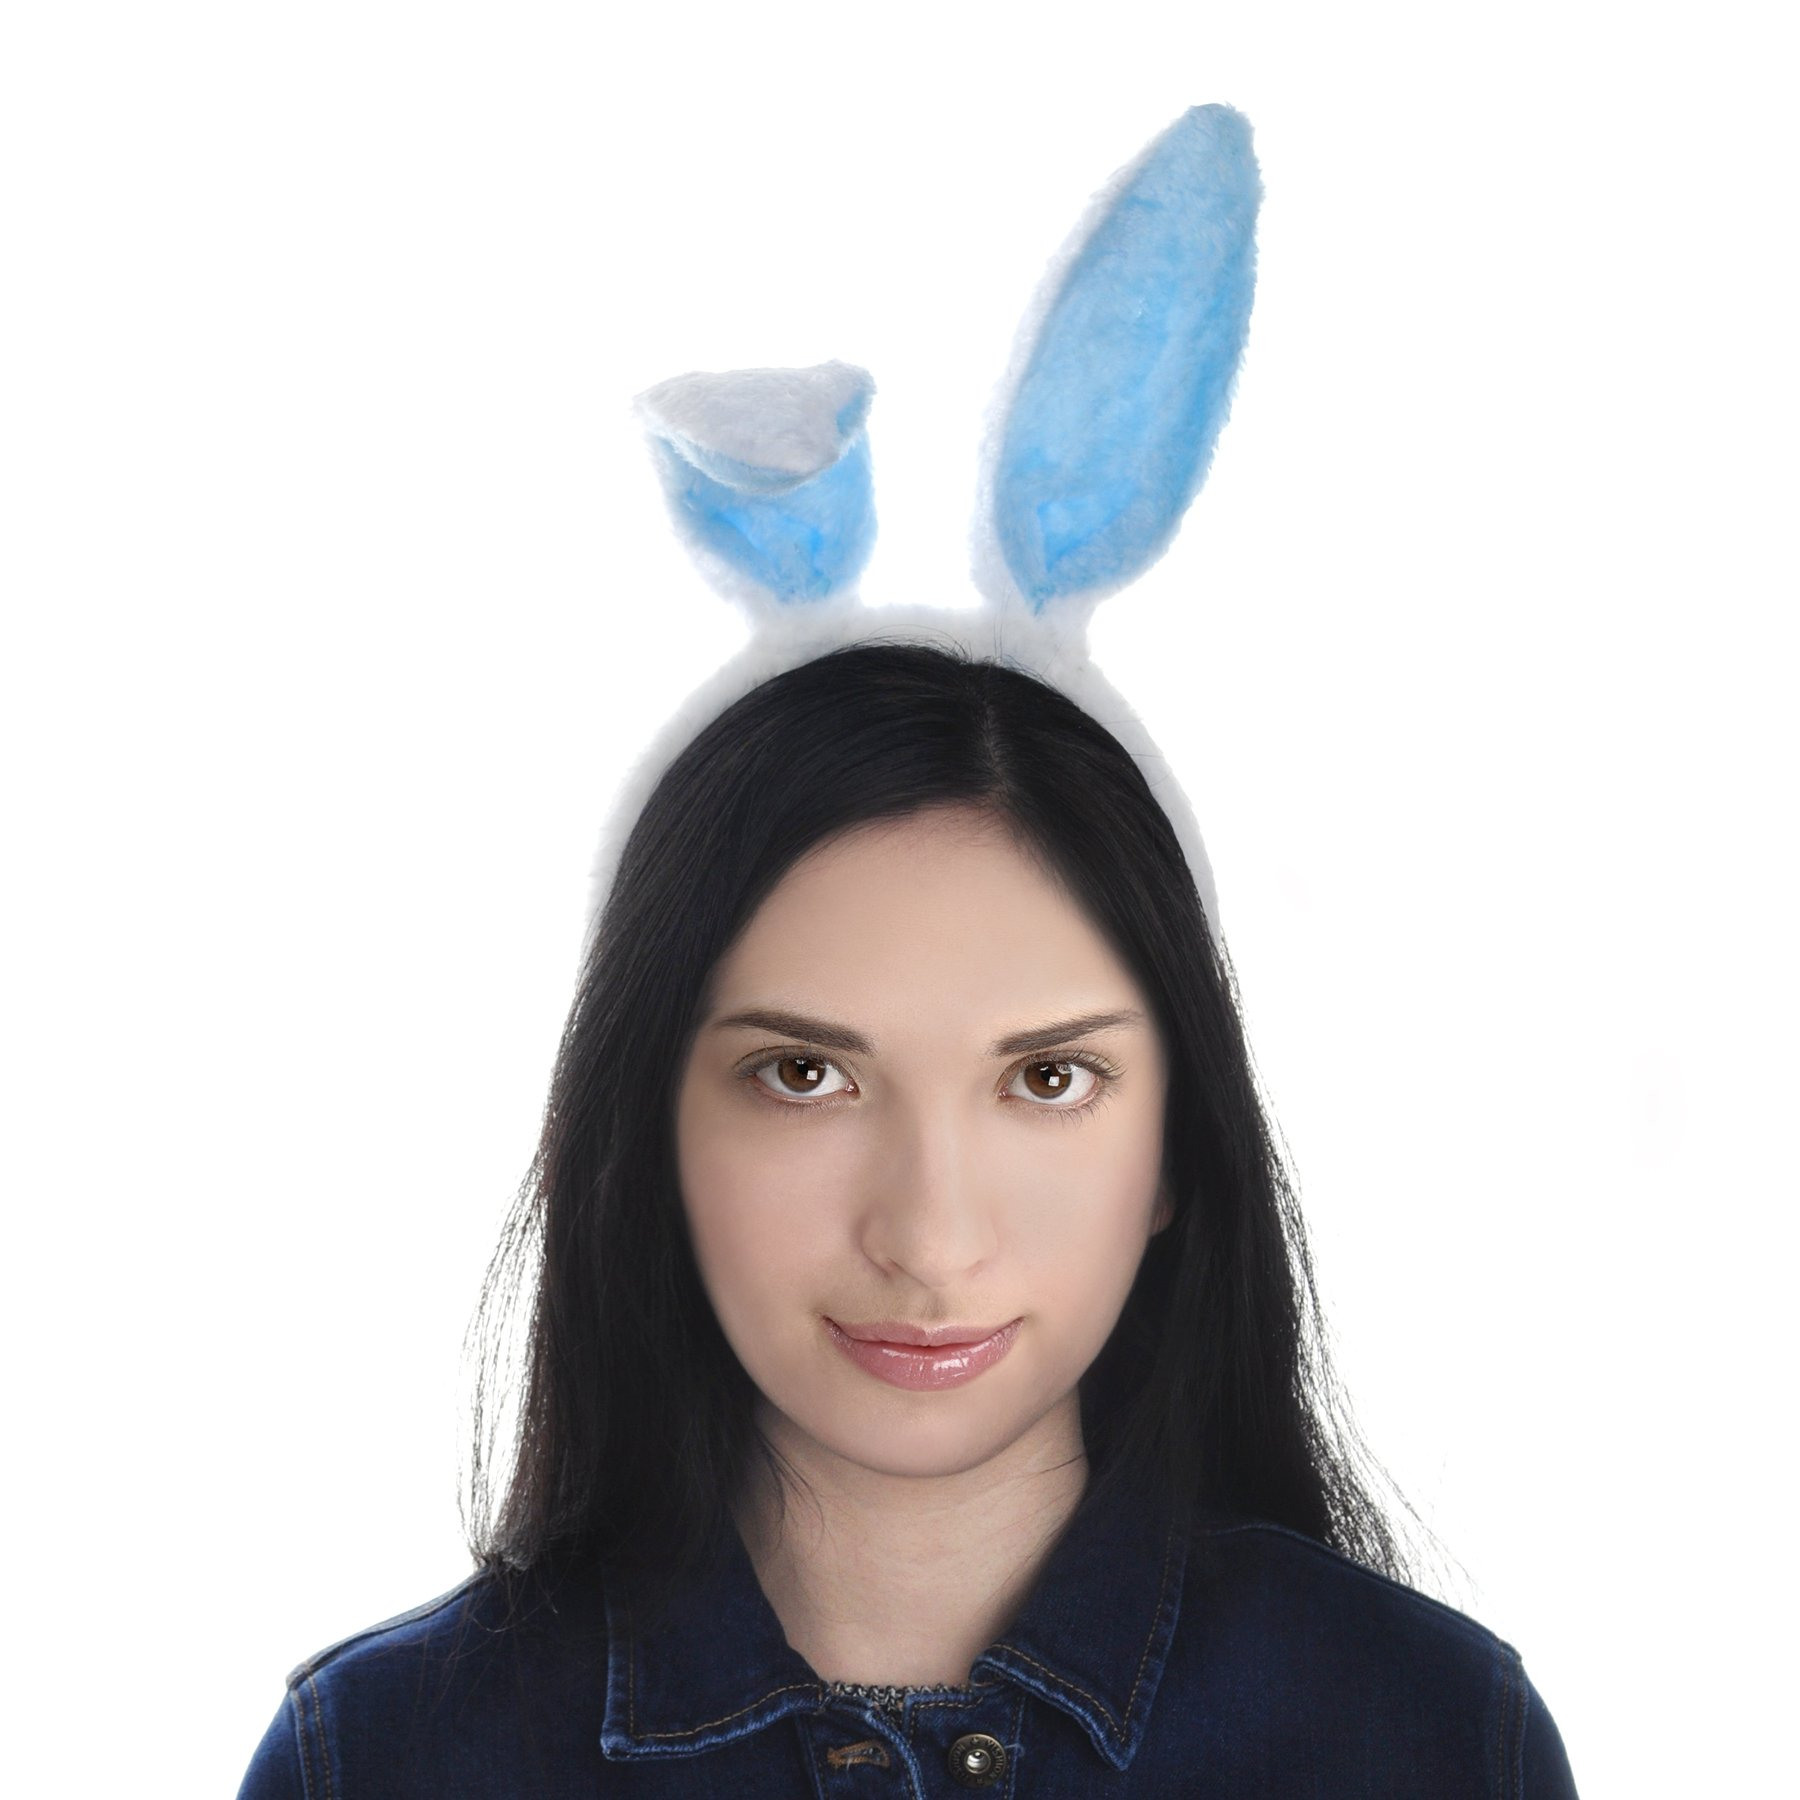 Toptie Easter Bunny Ears Headband, Soft Touch Plush Cosplay Party Suppliers-White-1pc by TOPTIE (Image #8)